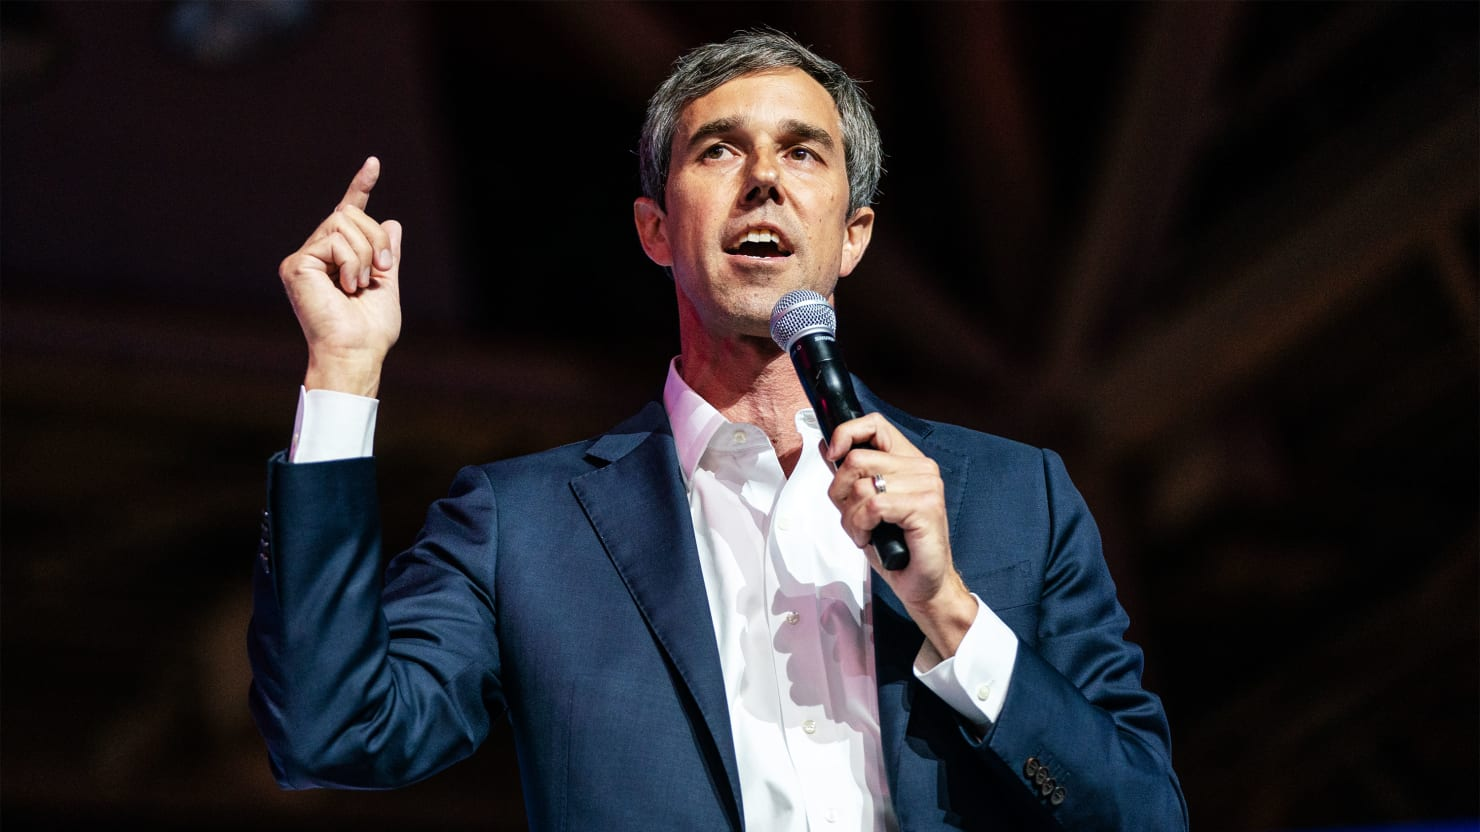 Beto Going Bust: The Once Great Dem Hope Is Among the Many 2020ers Struggling for Cash